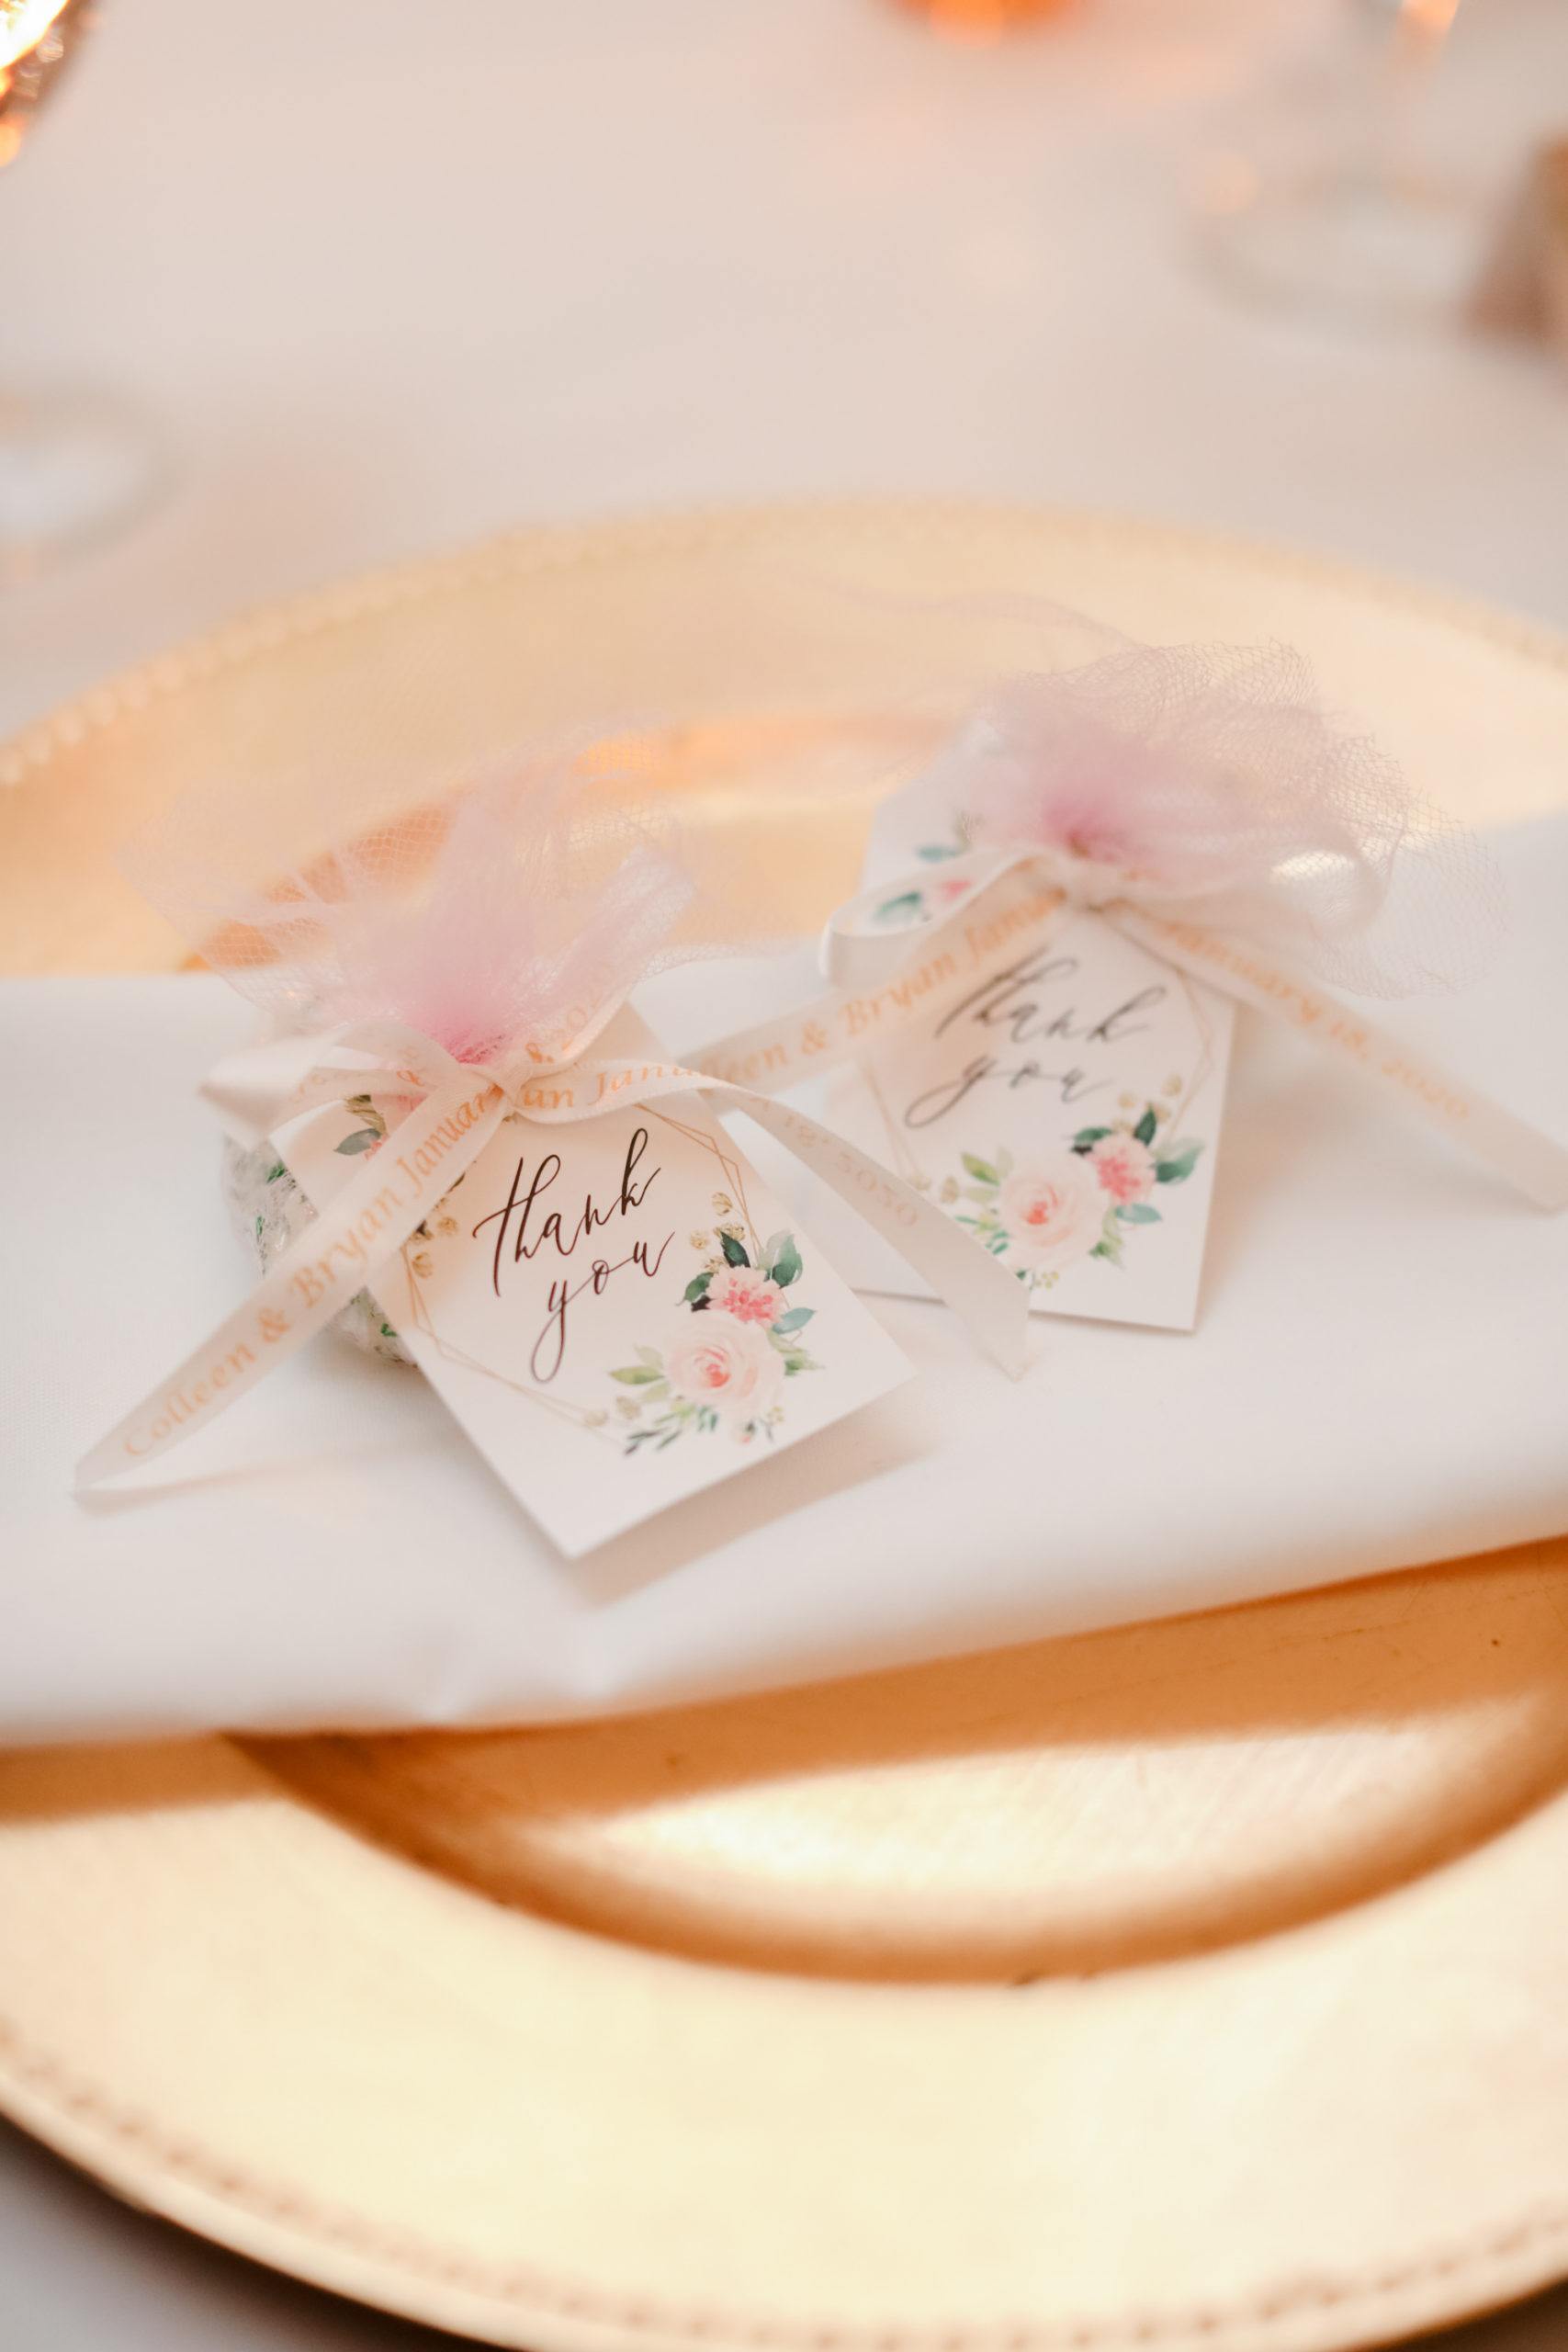 Wedding Place Setting with Gold Charger and White Napkin | Wedding Favors with Watercolor Floral Tags | Blush Dusty Rose